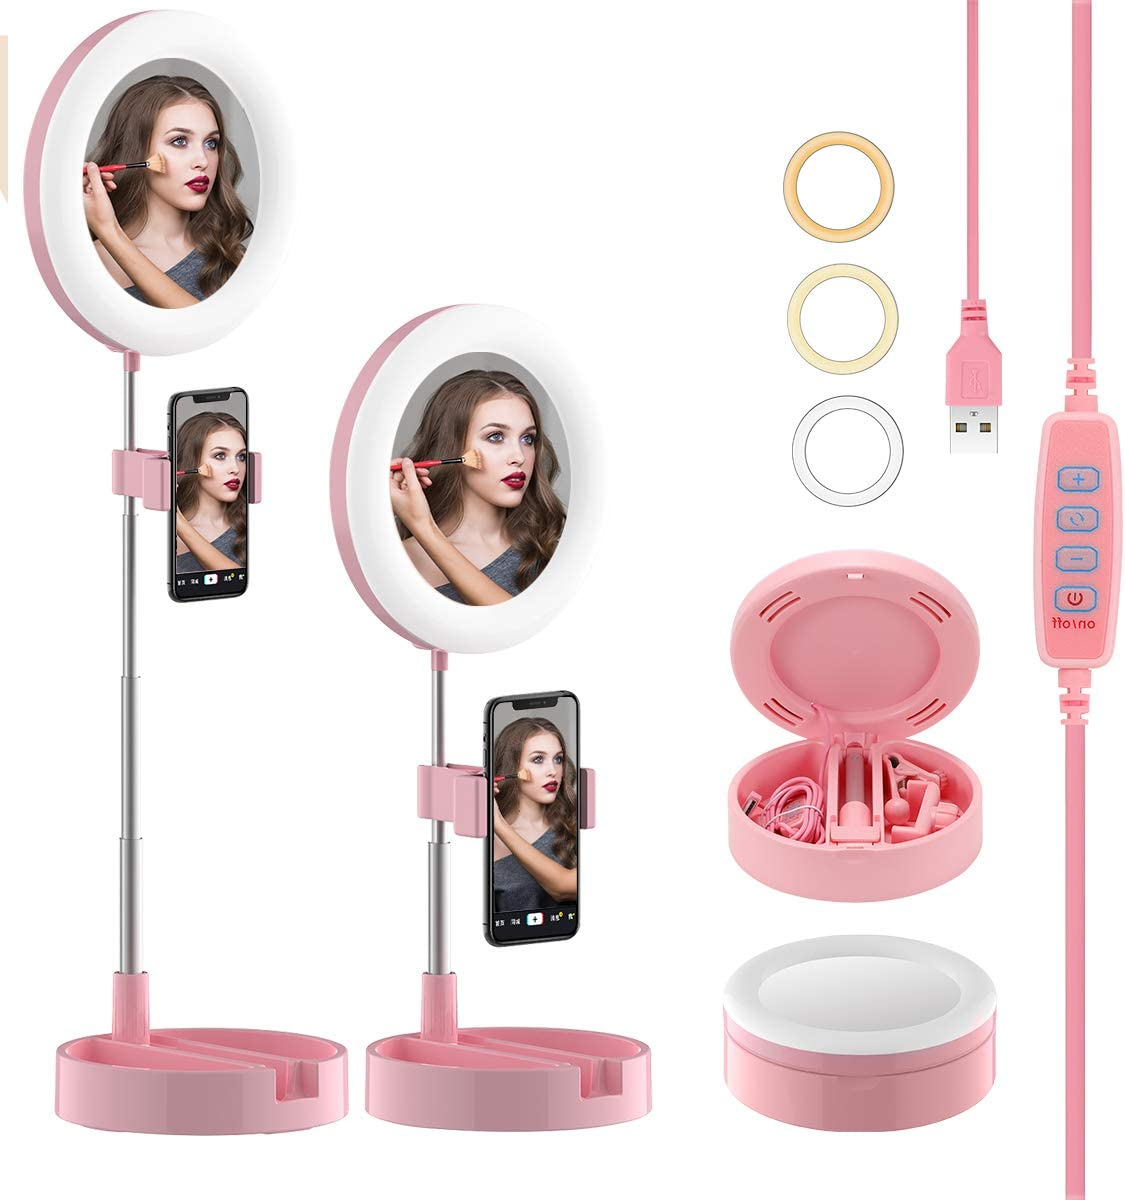 Makeup Mirror Small Selfie Ring Light 3 Light Modes /& 10 Brightness Level for Video Recording//Beauty//Live Video led Desktop Ring Light with Stand and Cell Phone Holder 6.5 inch with Storage Box